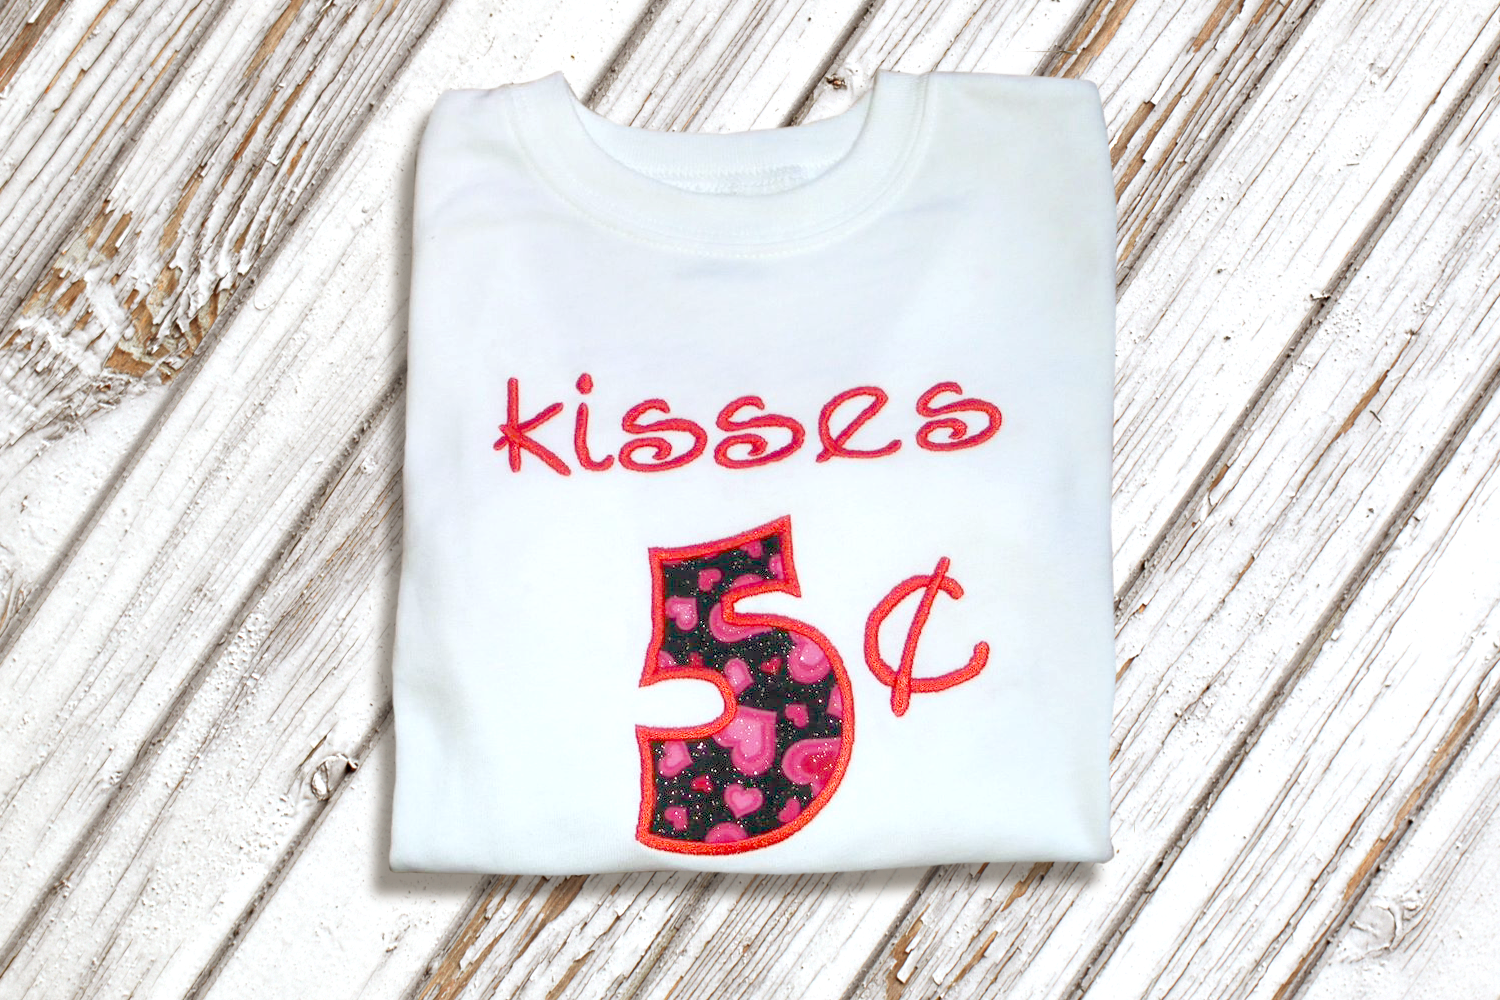 Kisses 5 Cents Valentine's Day Applique Embroidery Design example image 1